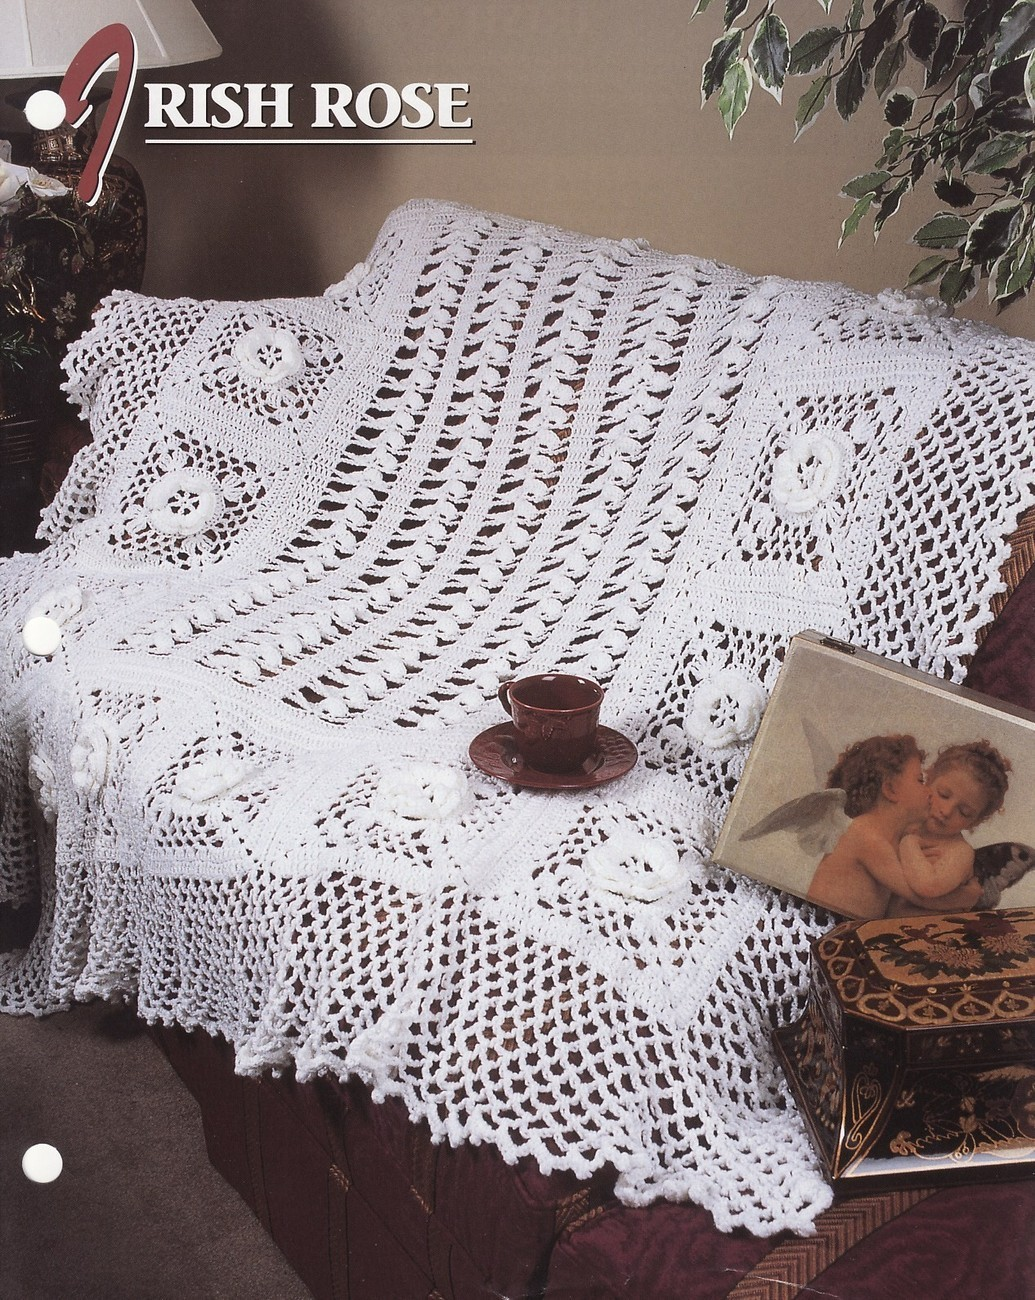 Irish Lace Afghan or Bedspread floral crochet pattern | eBay